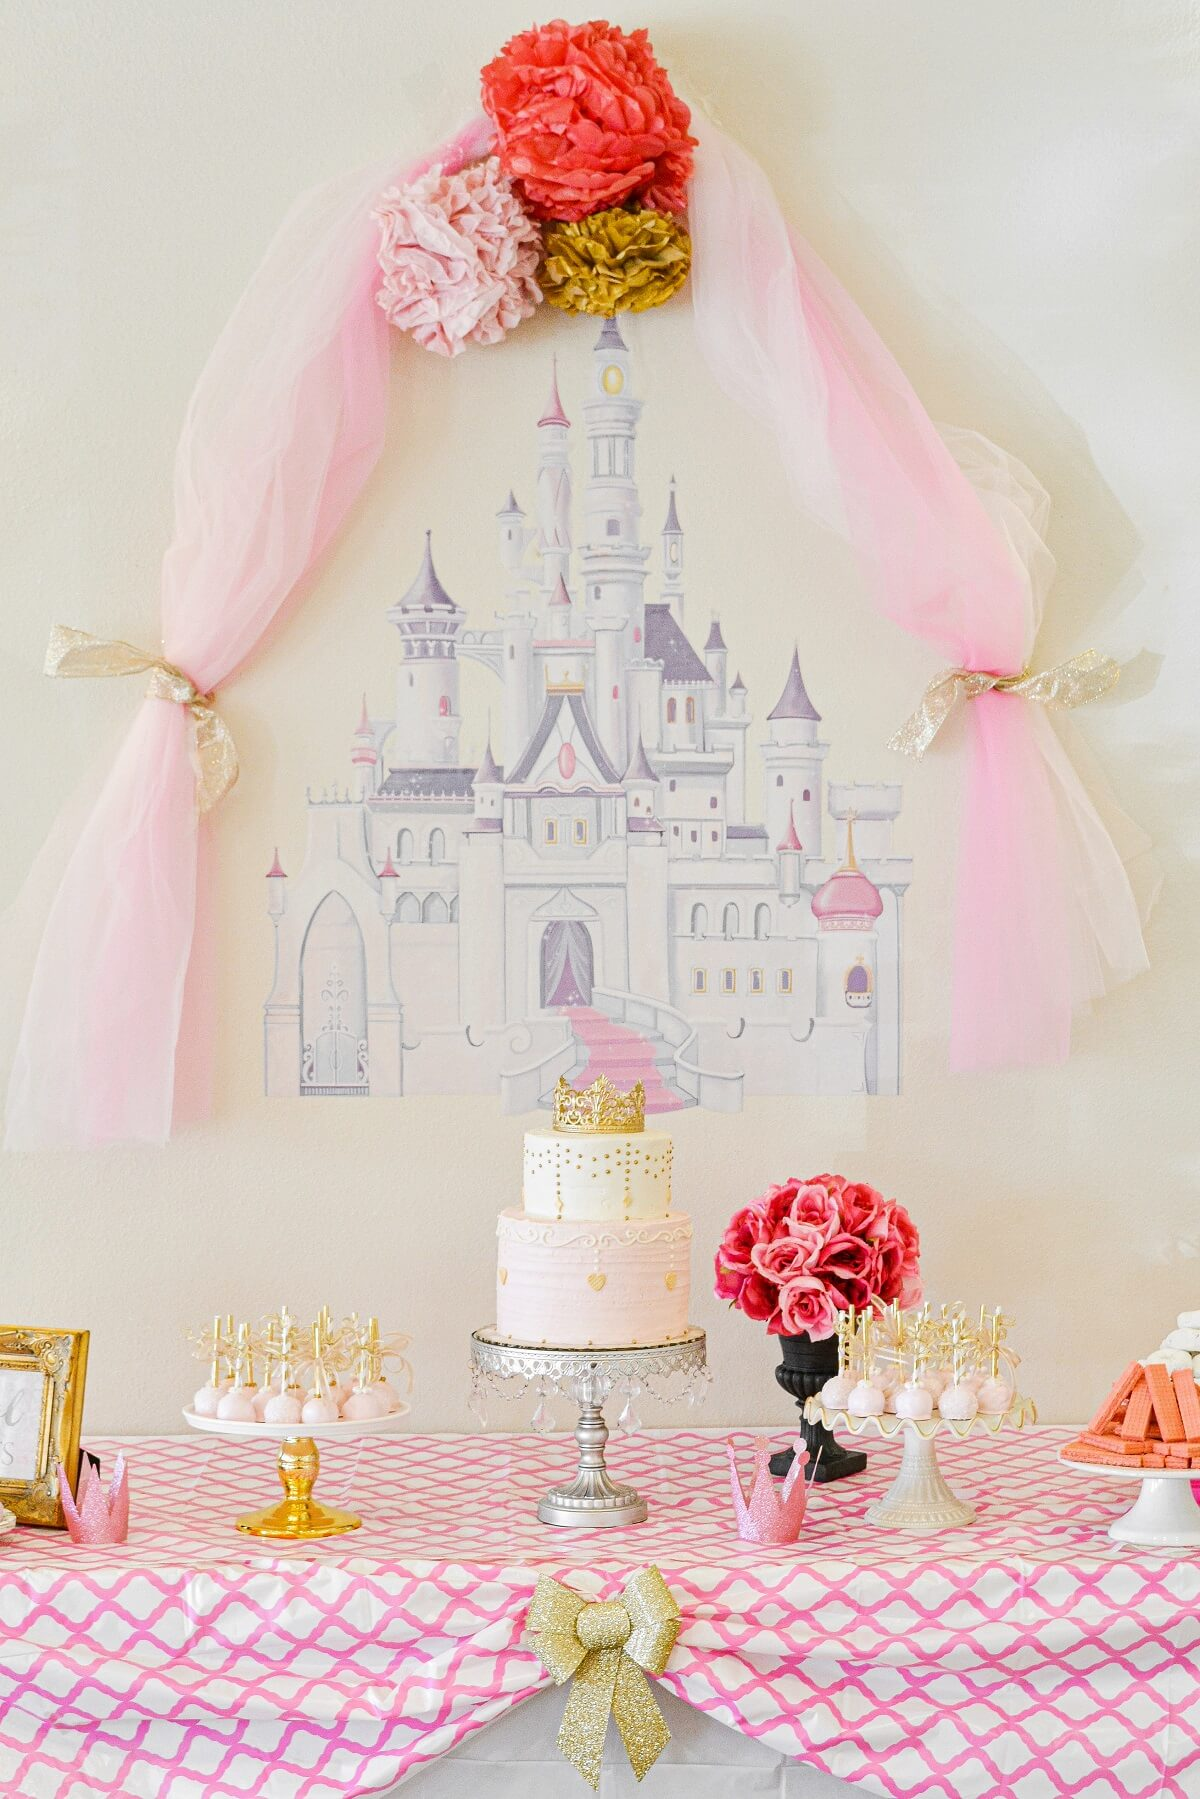 A pink and gold princess party cake table.